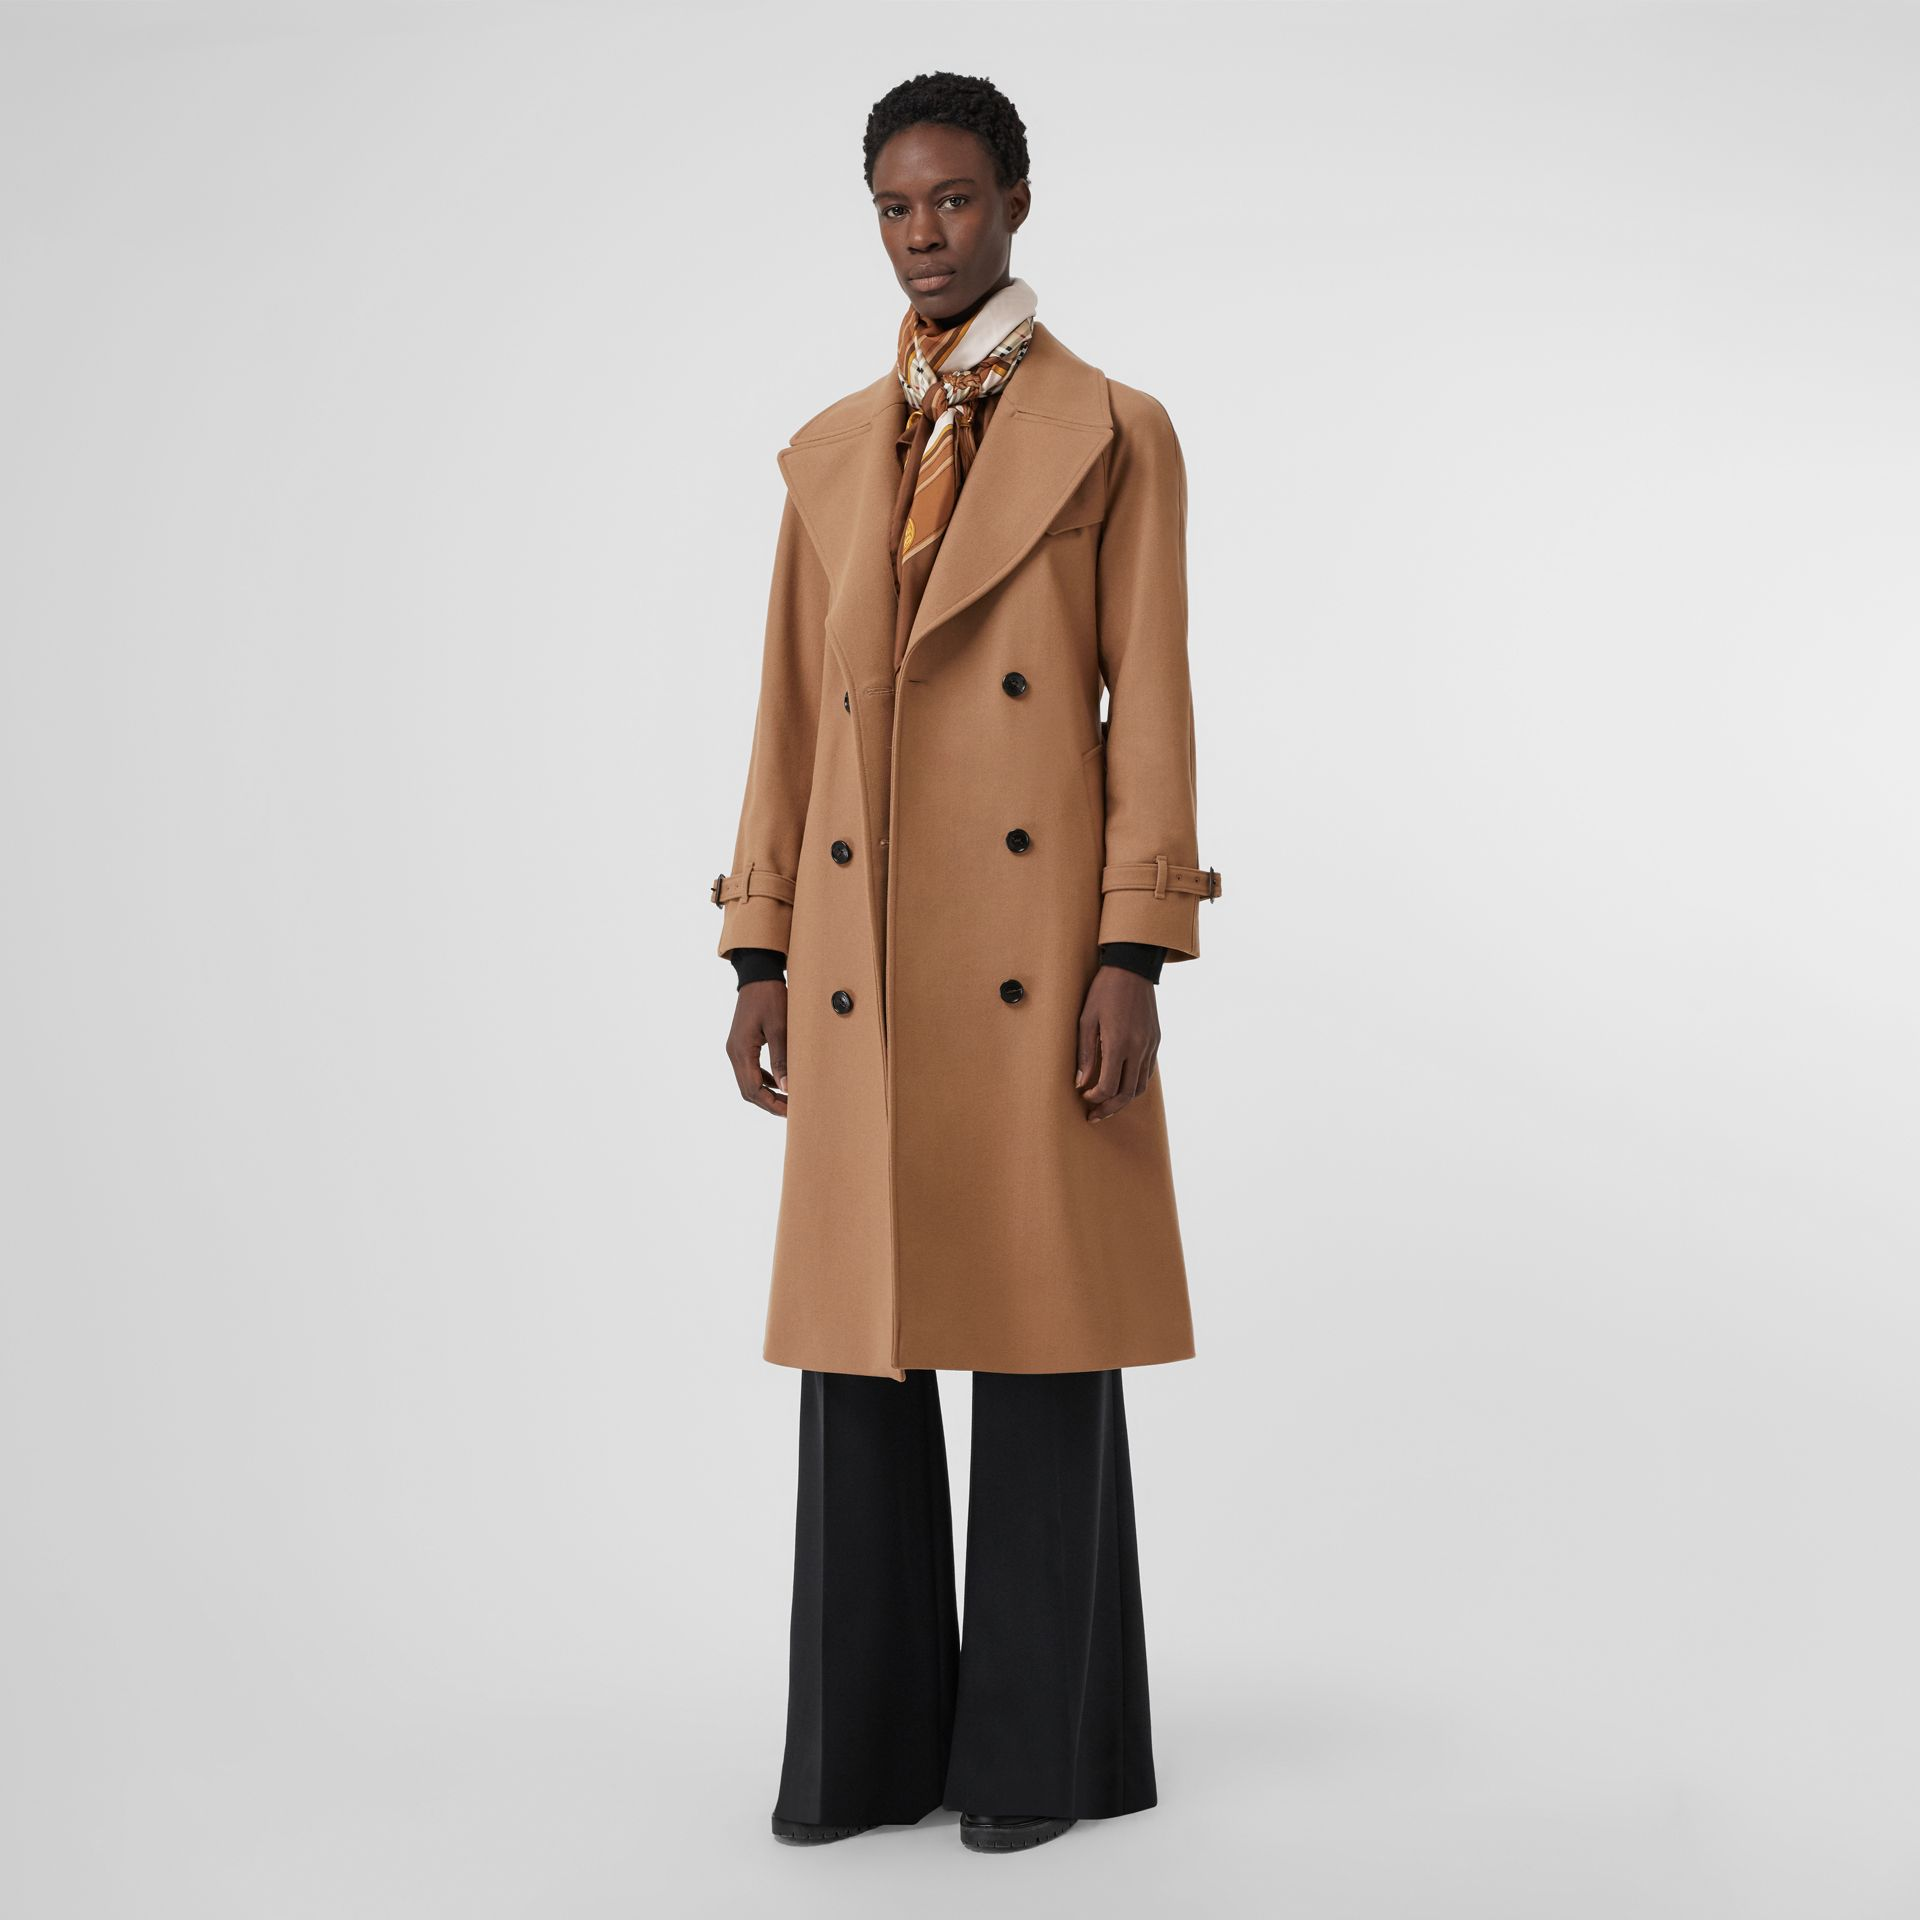 Herringbone Wool Cashmere Blend Trench Coat in Camel - Women | Burberry United Kingdom - gallery image 0